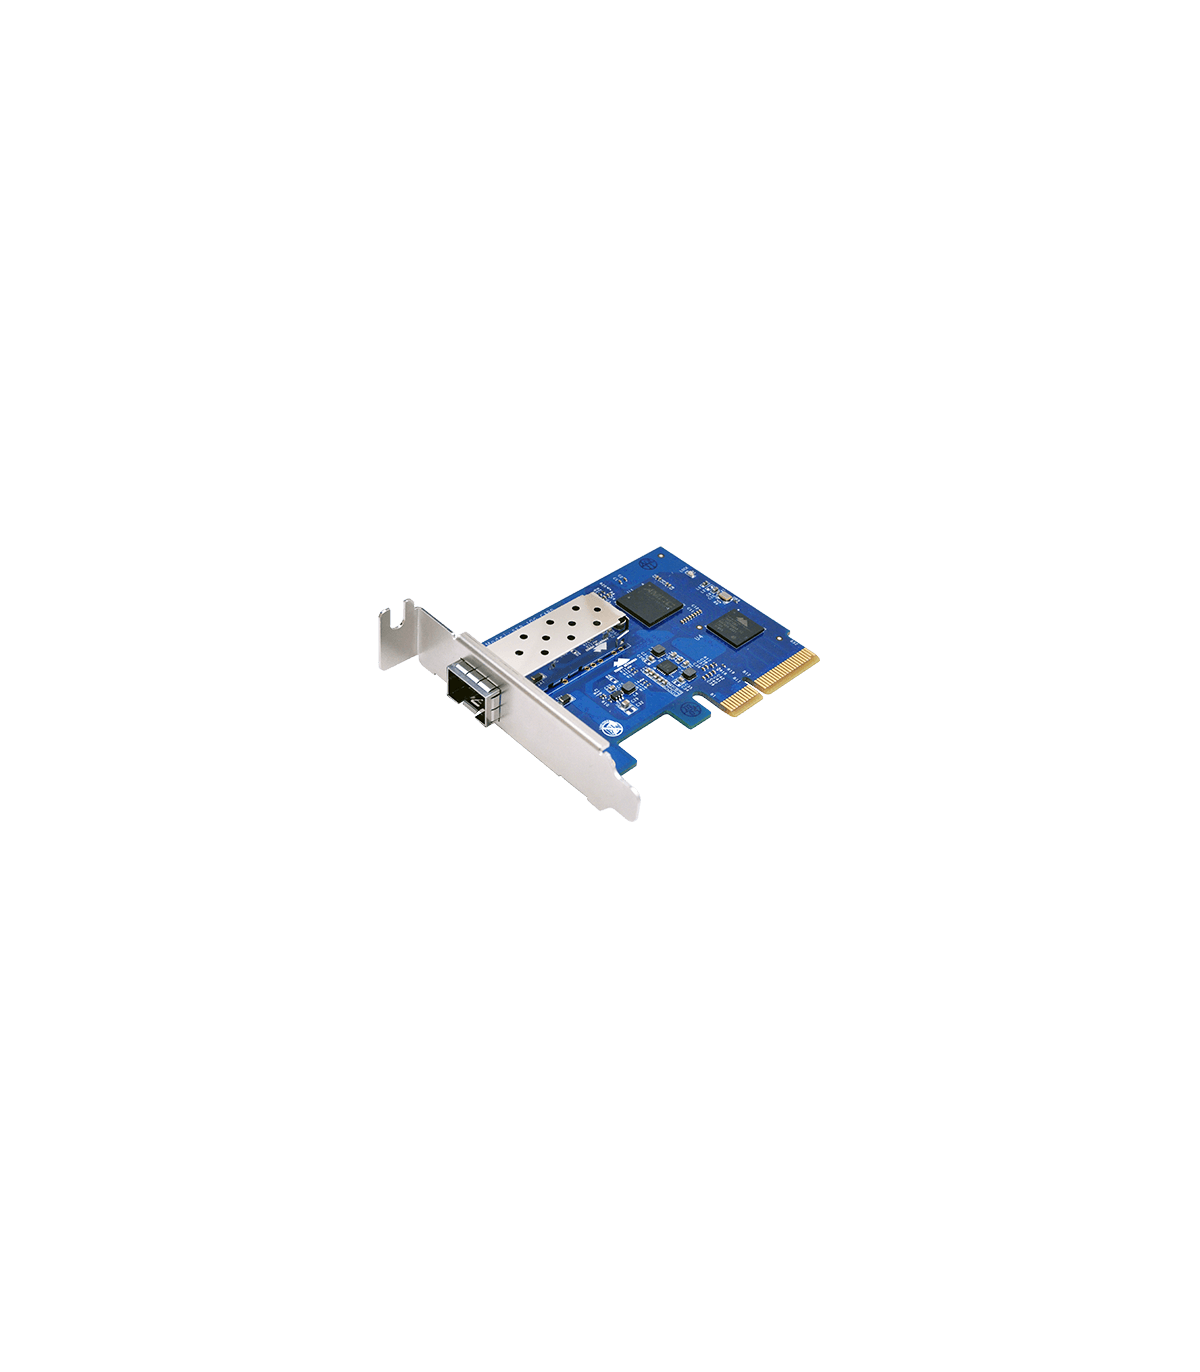 Synology Add-in Card E10G15-F1 (10GbE SFP+)  | Accessories  | Synology  | khuetu.vn